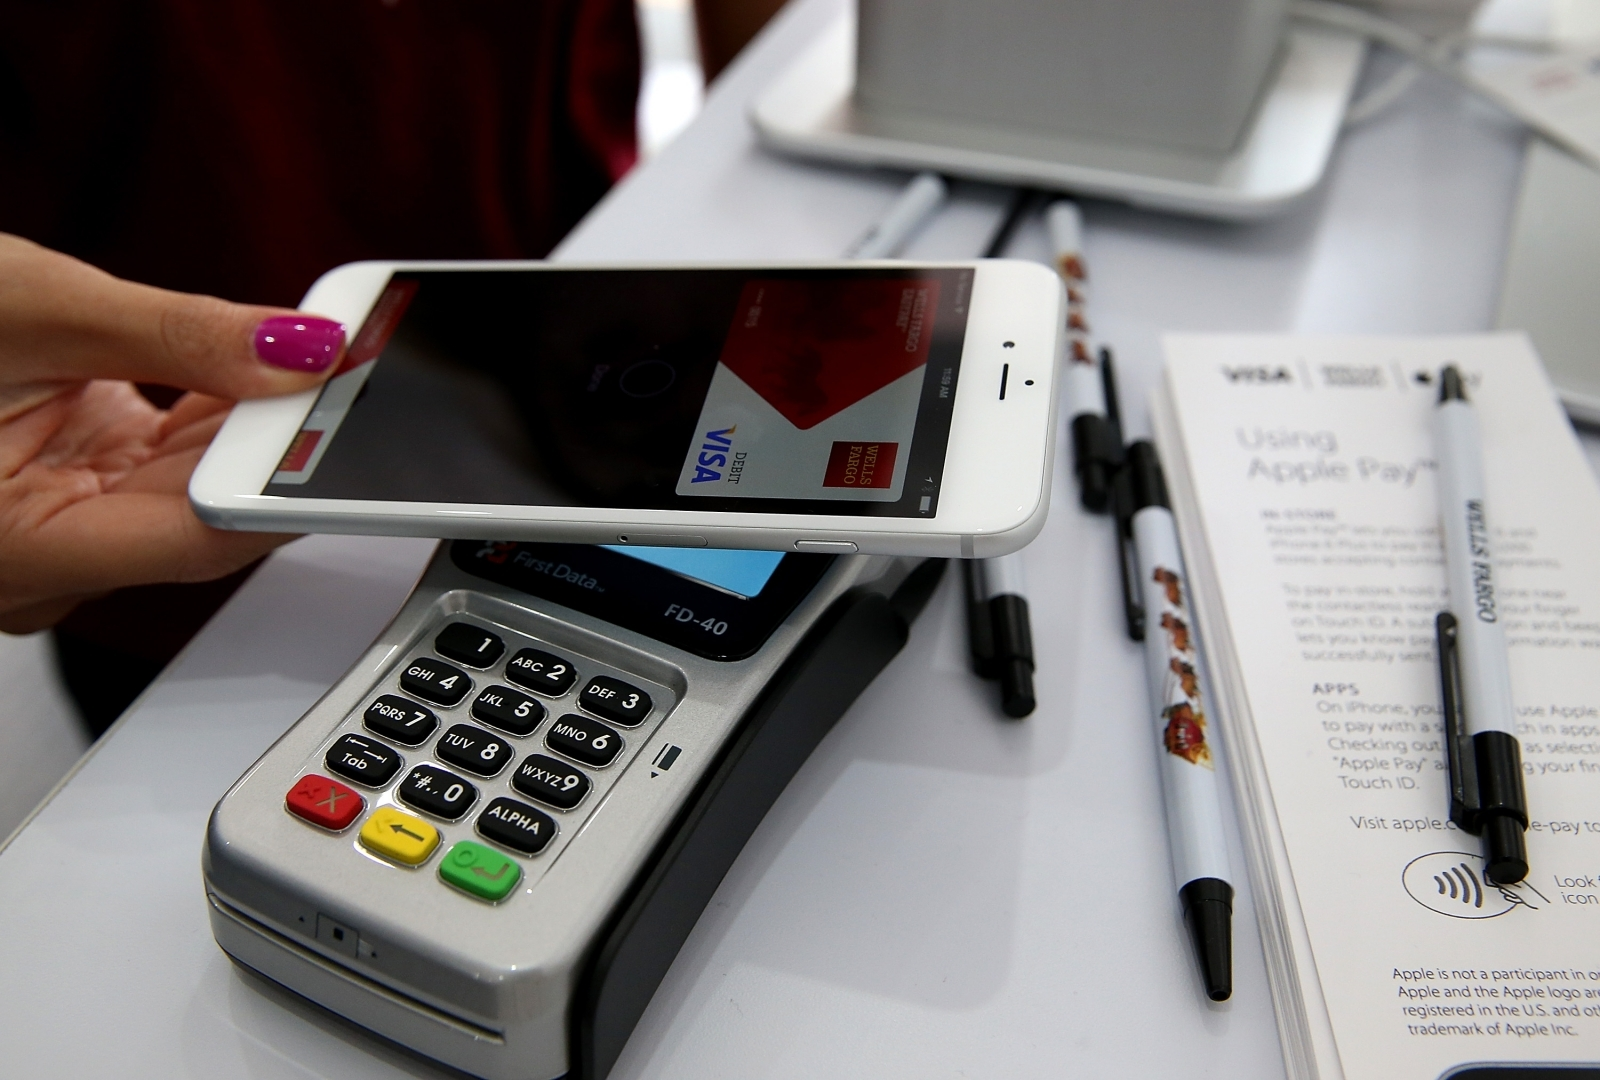 Apple Pay used on an iPhone